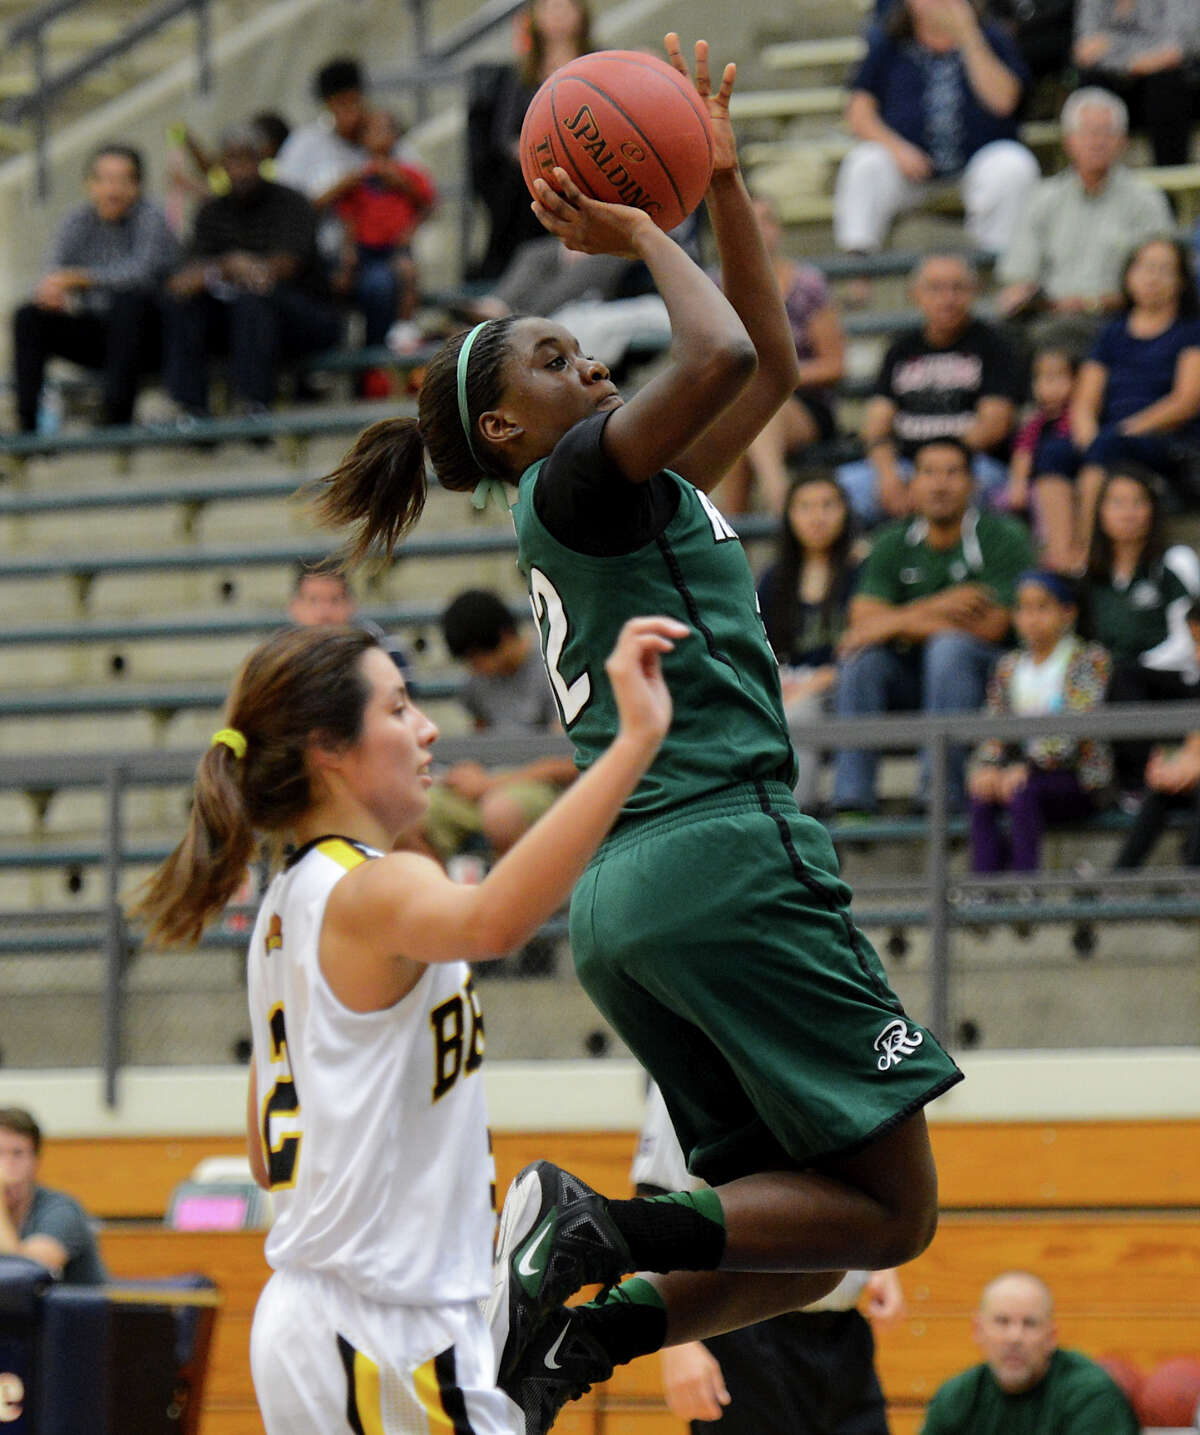 Reagan's Moriah Mack (32) takes a shot during a girls non-district basketball game between the Brennan Bears and the Reagan Rattlers at Paul Taylor Field House in San Antonio, Saturday, November 5, 2012. John Albright / Special to the Express-News.